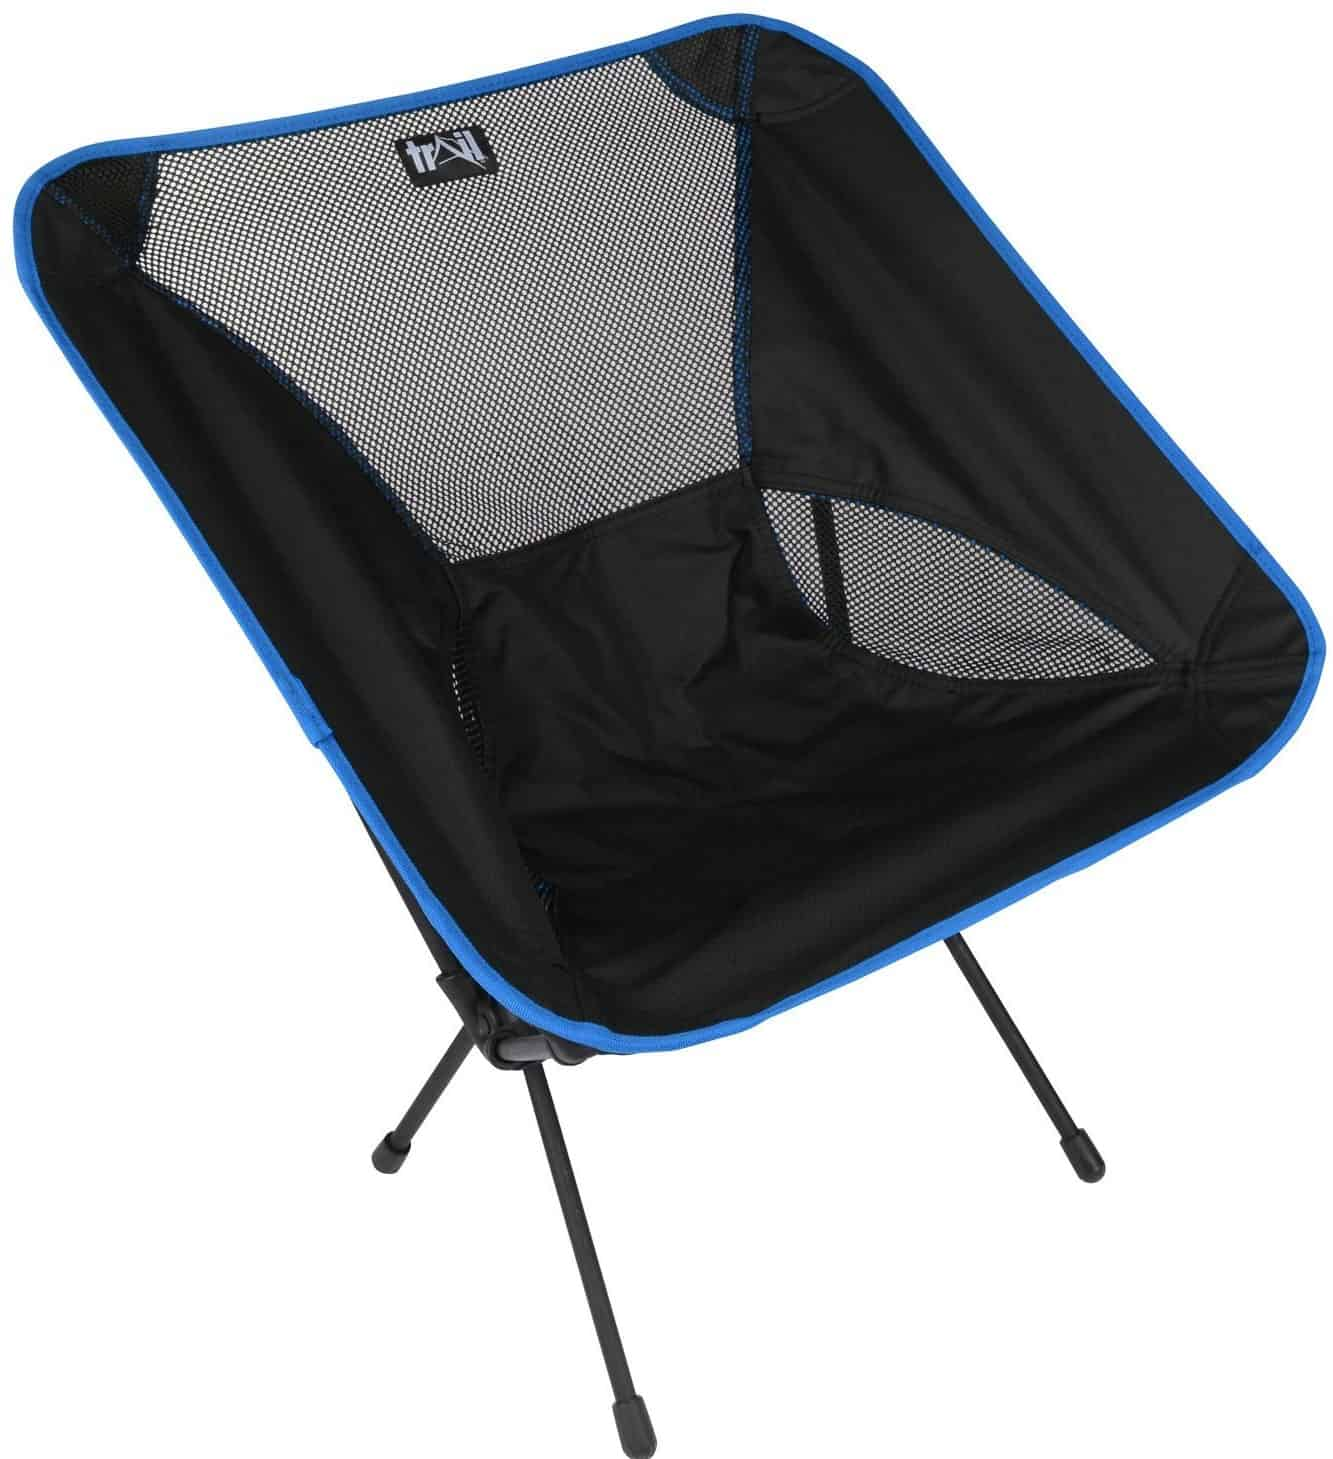 Most Comfortable Camping Chair Camping Chair Reviews What Are The Best Camping Chairs 2019